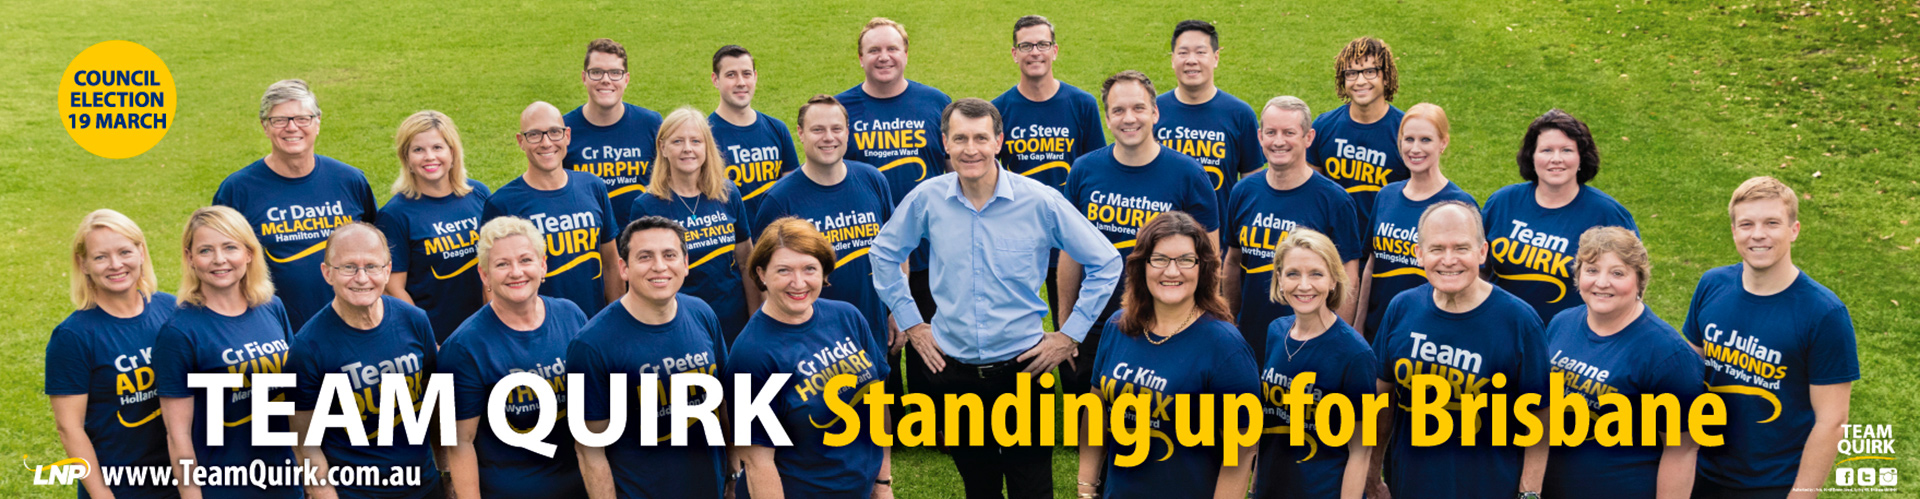 Team Quirk 2015, featuring Lord Mayor Graham Quirk.